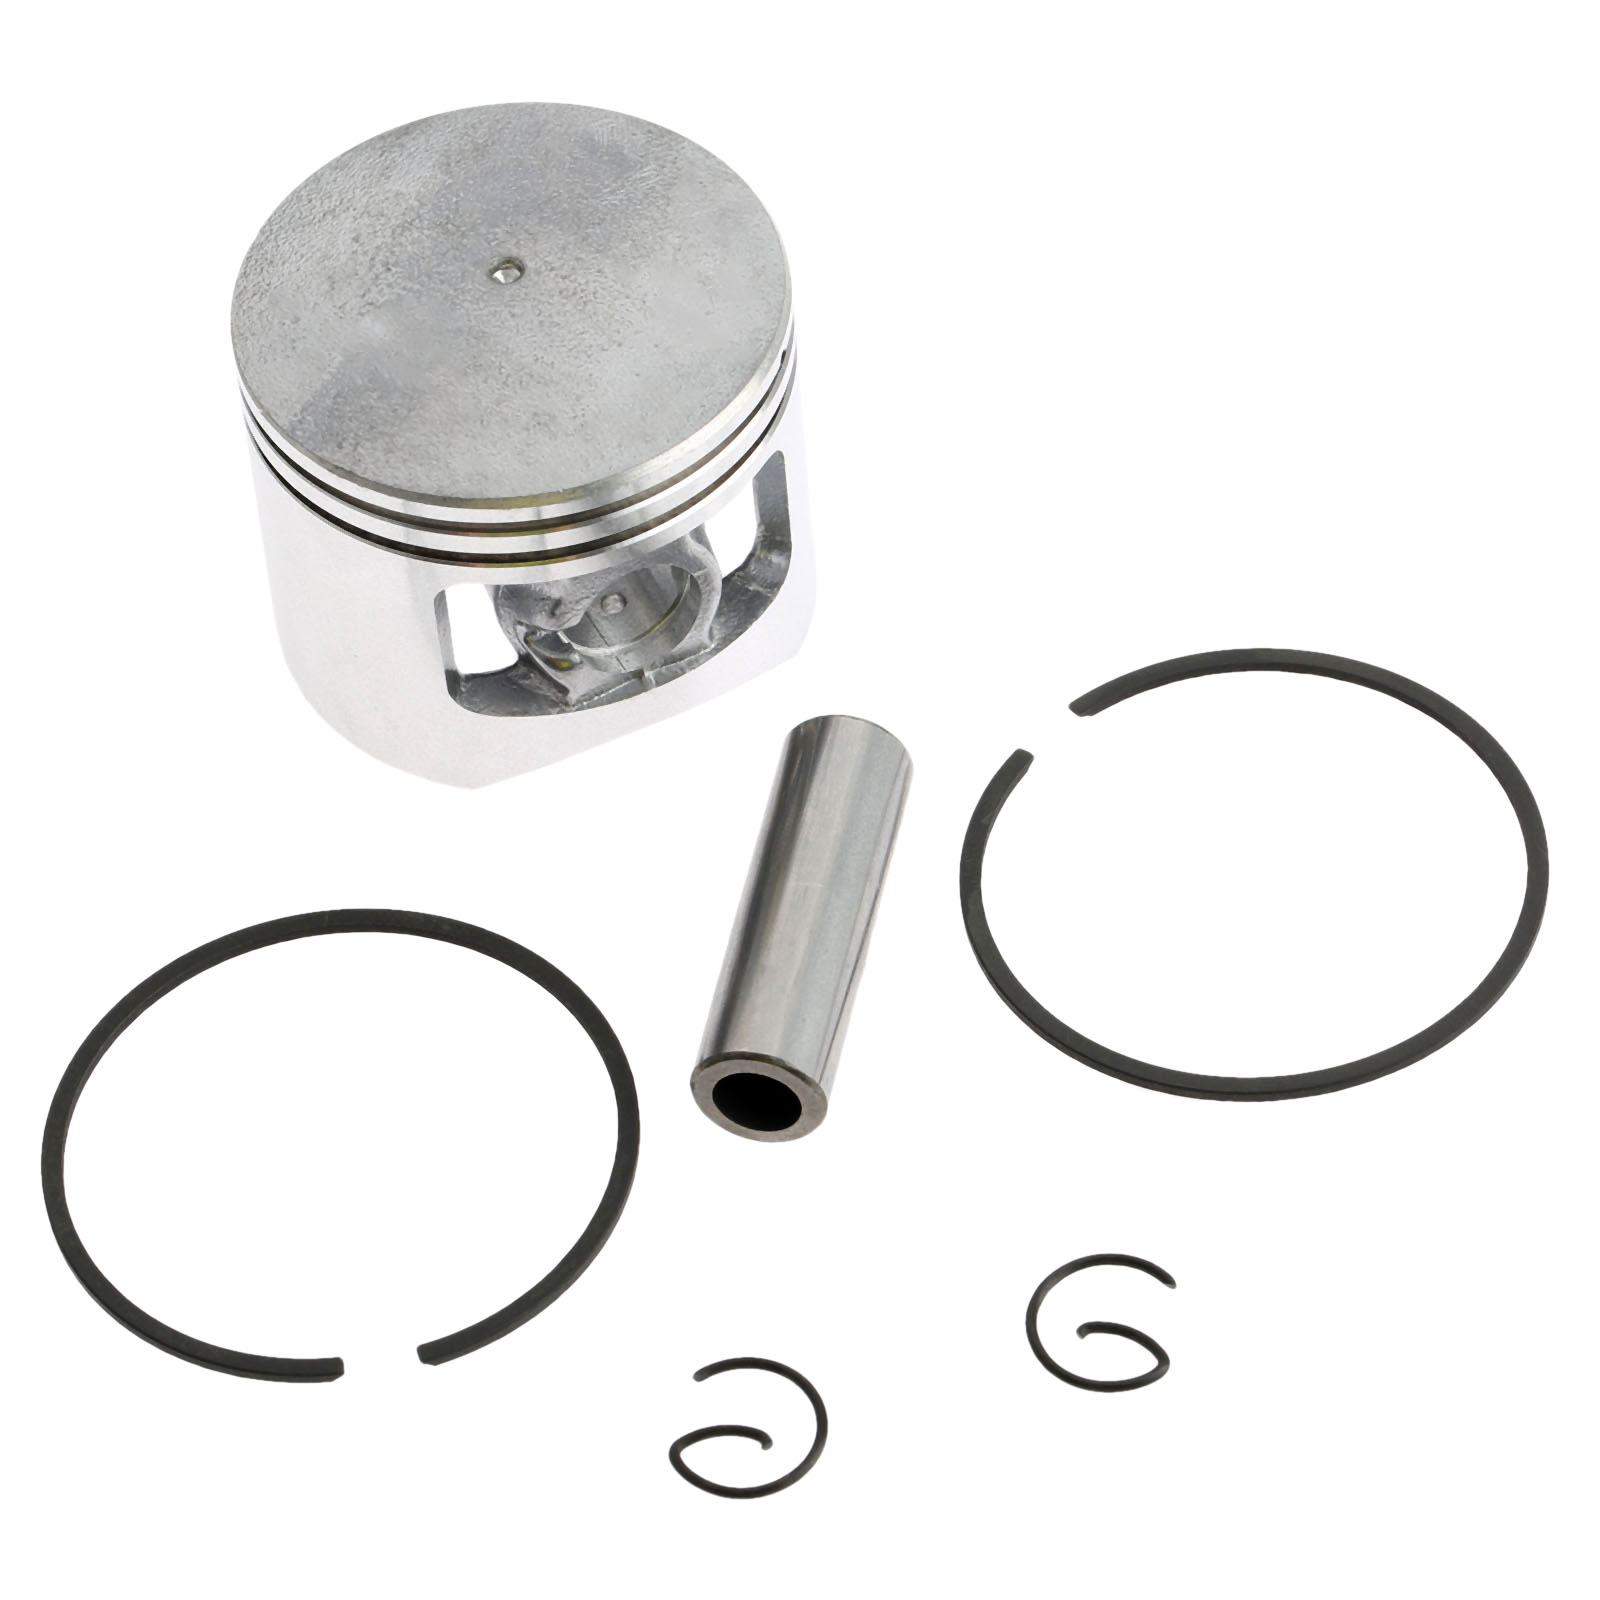 45mm Piston Kit Garden Tool Parts 5200 Chainsaw Piston Assy Set with Ring and Pin for STIHL 018 MS180 CHAINSAW Spare Parts New